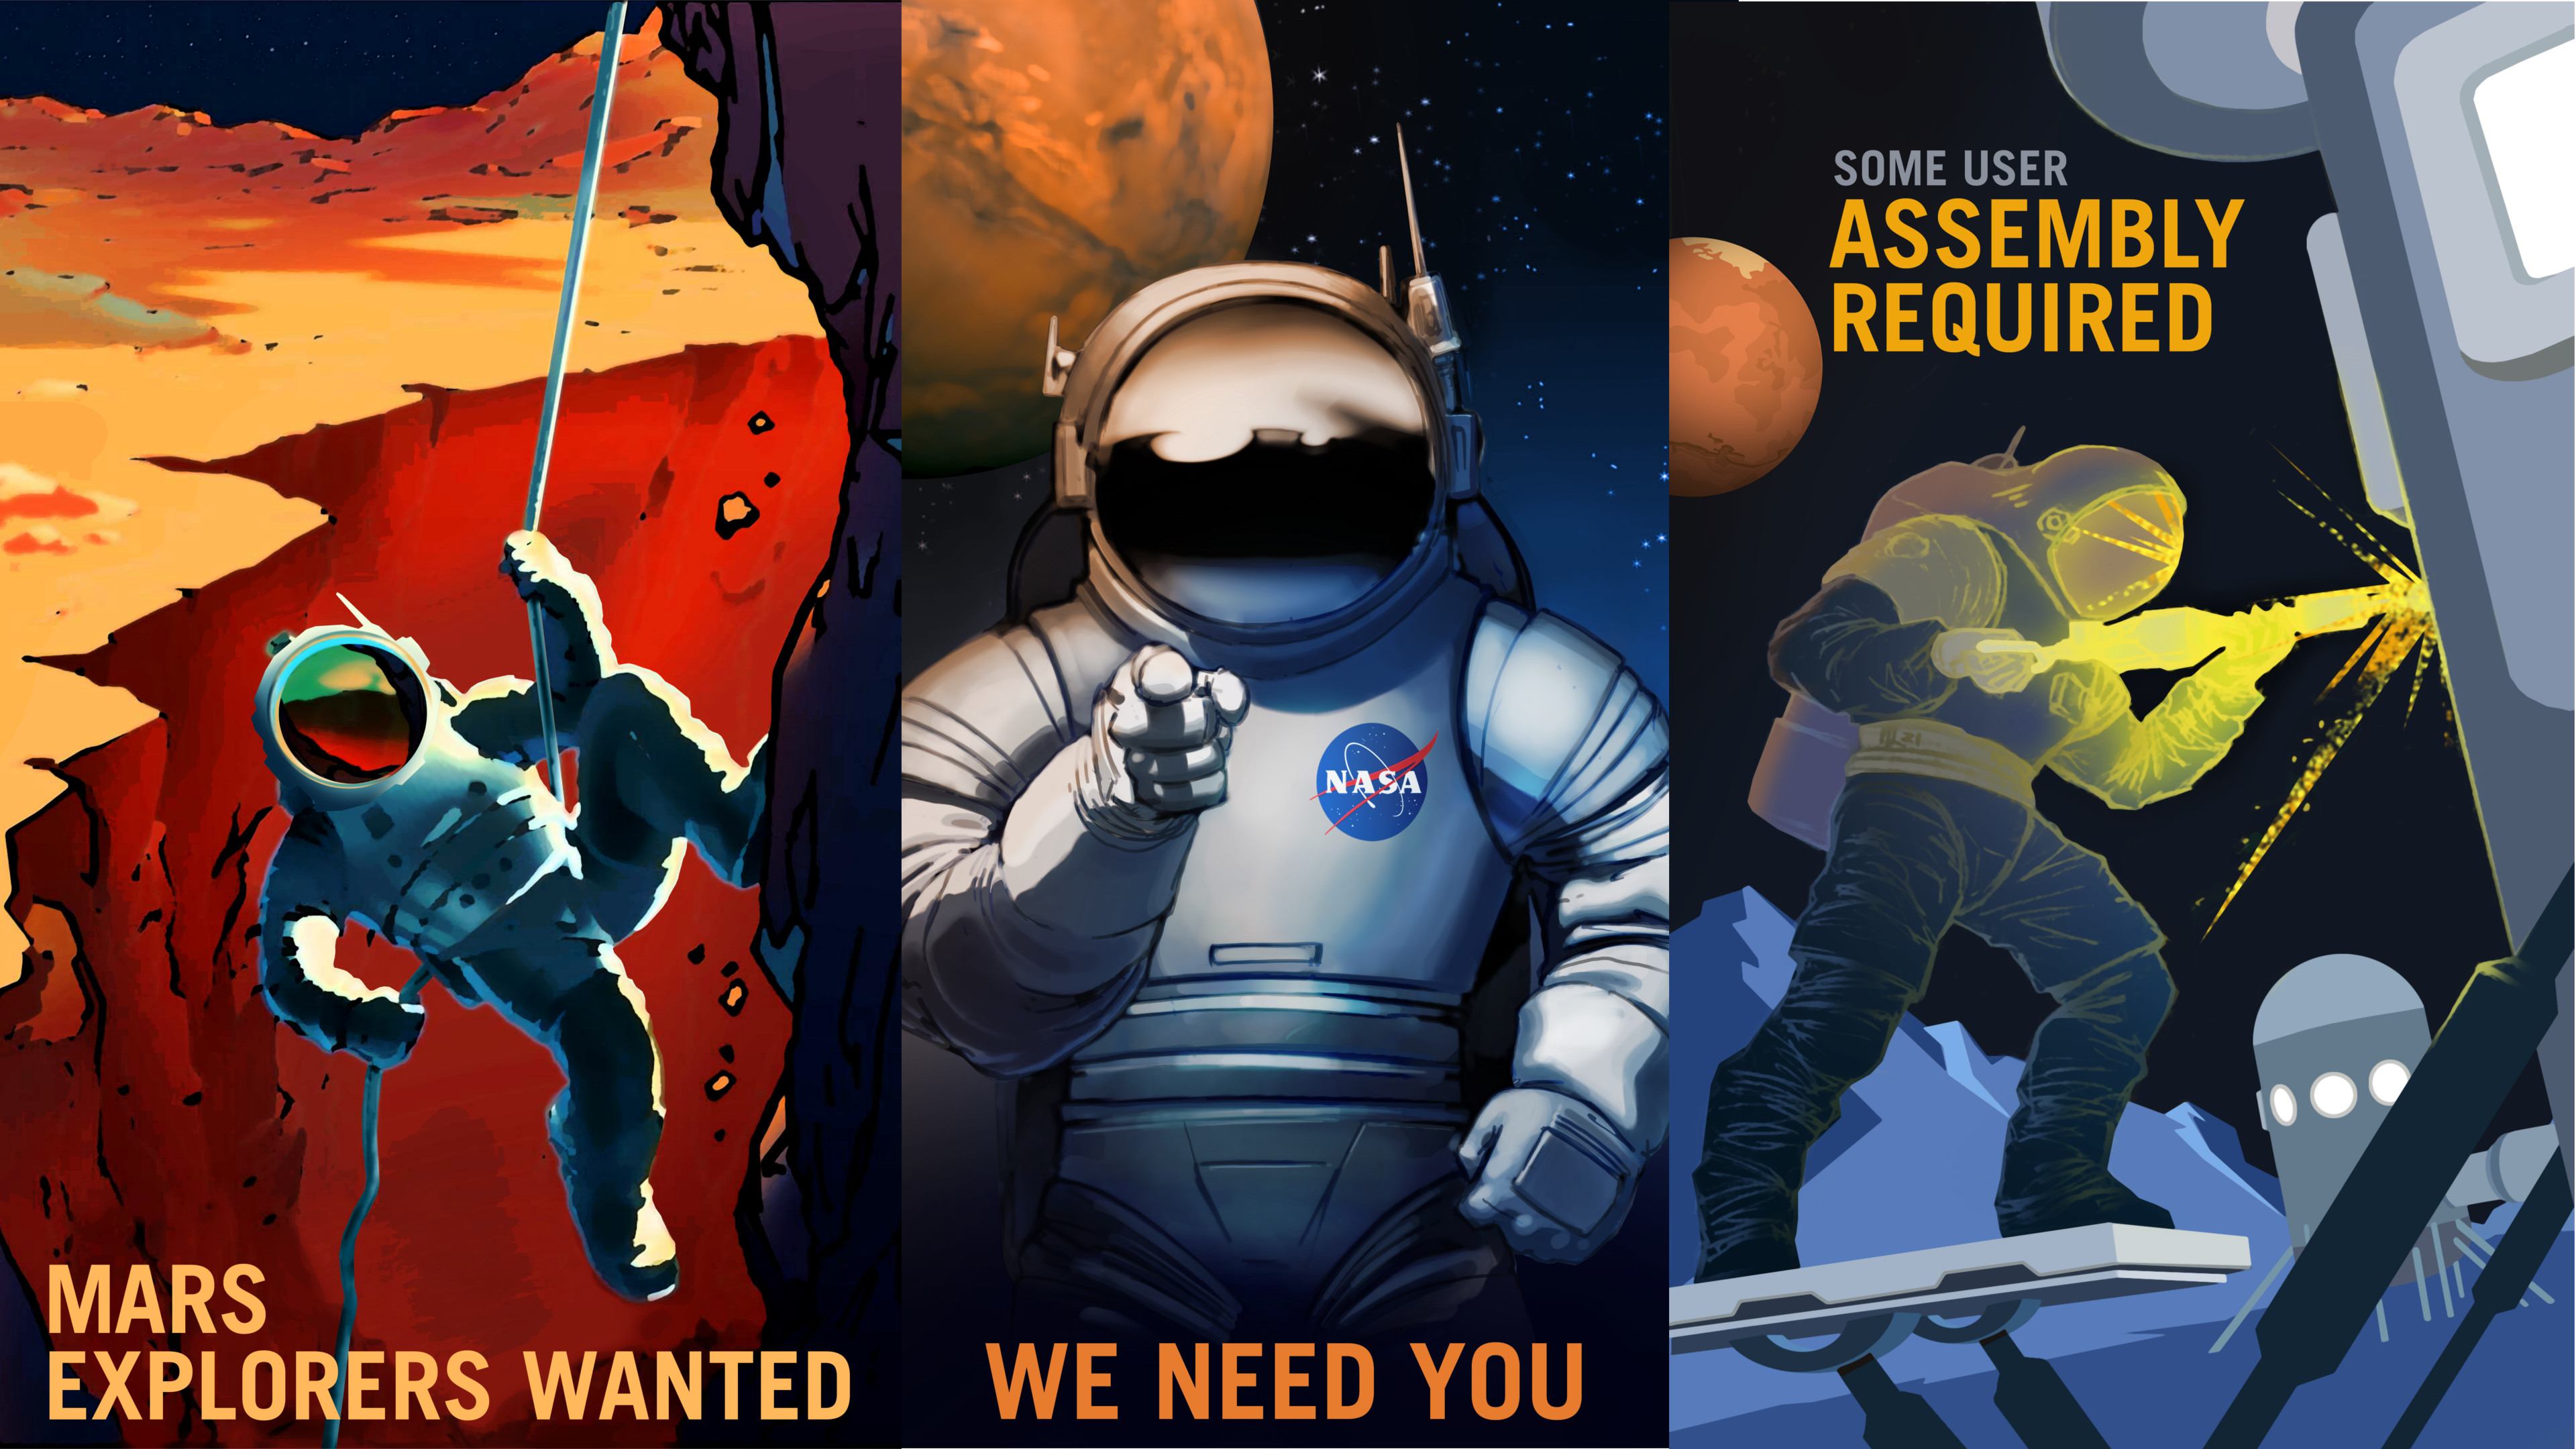 [x-post from /r/wallpapers] I combined a few of the NASA Mars posters into  a 4k wallpaper.